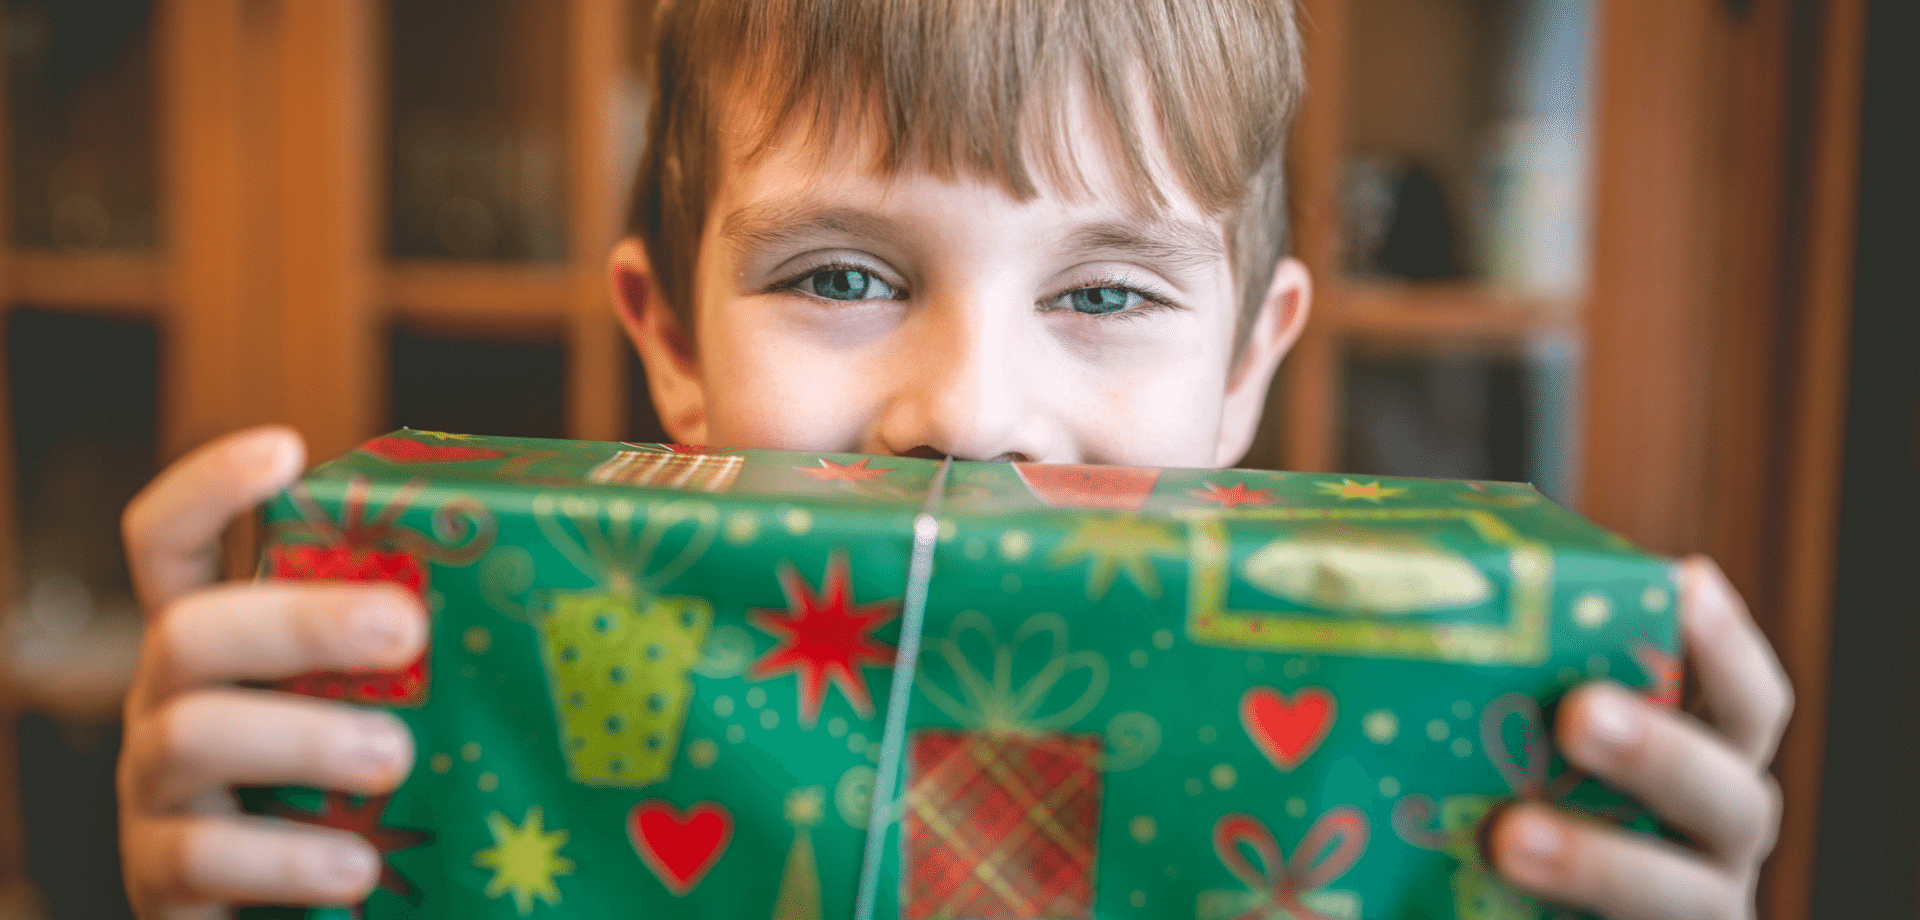 Make a difference  to a child this Christmas  with Angel Tree!